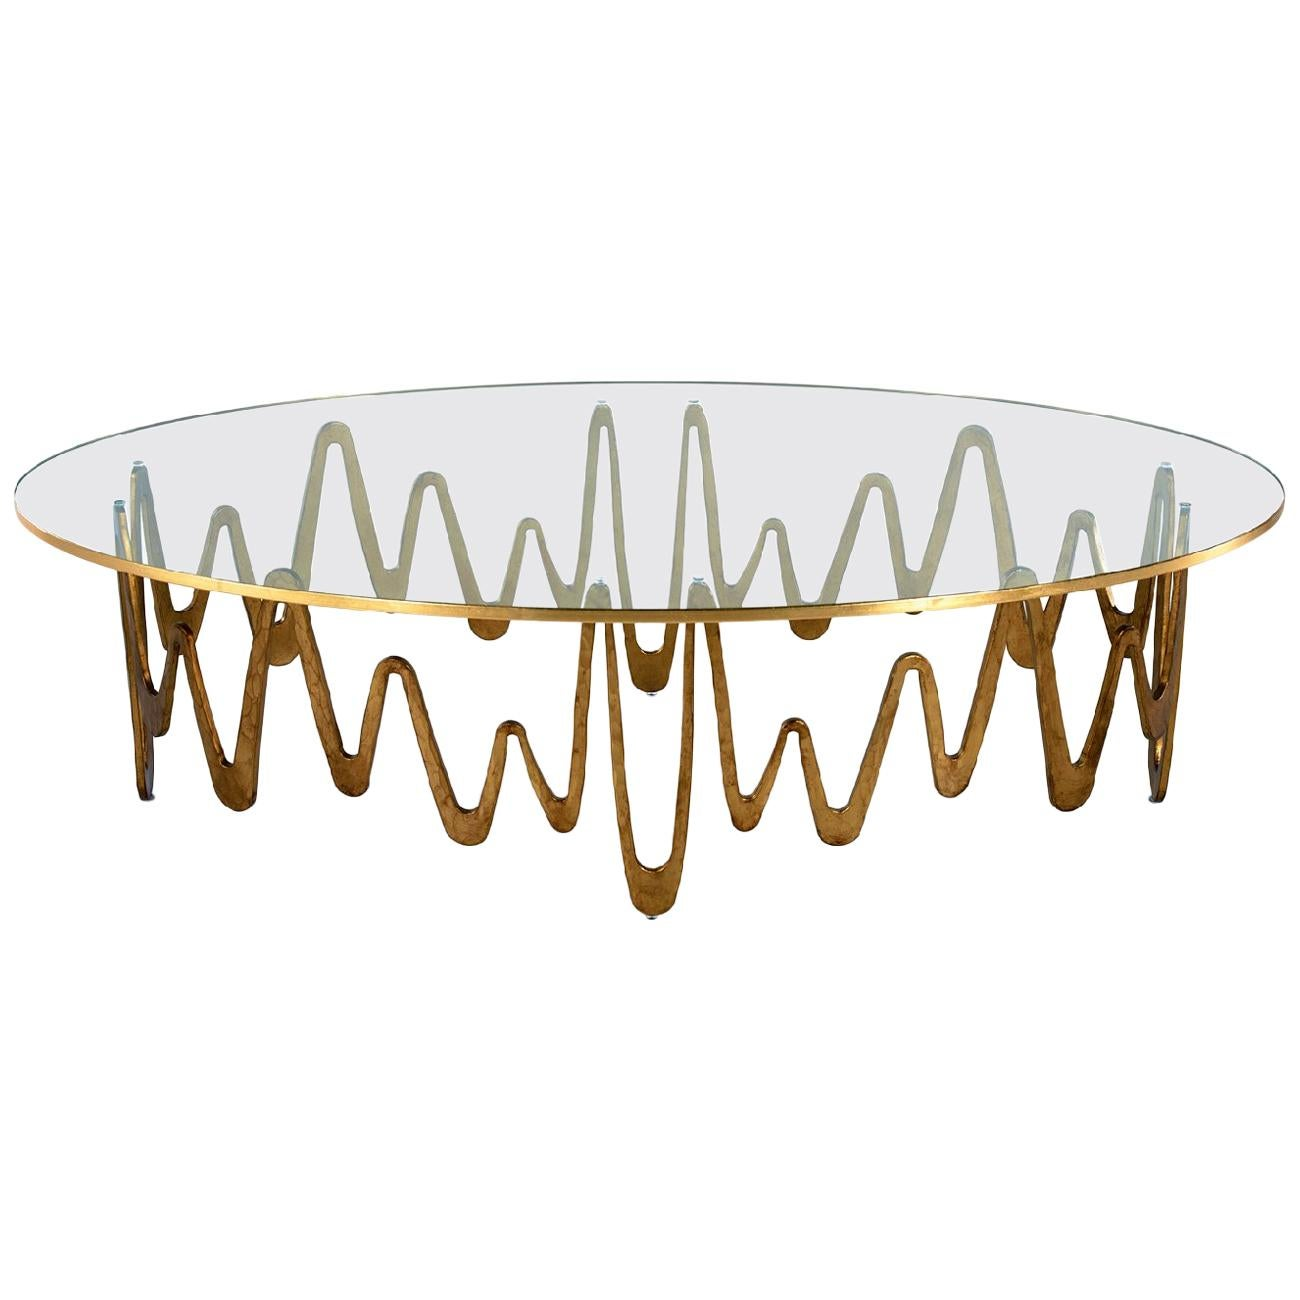 Coffee Table with Hammered Base Bronze or Silver Finish Toughtened Glass Top